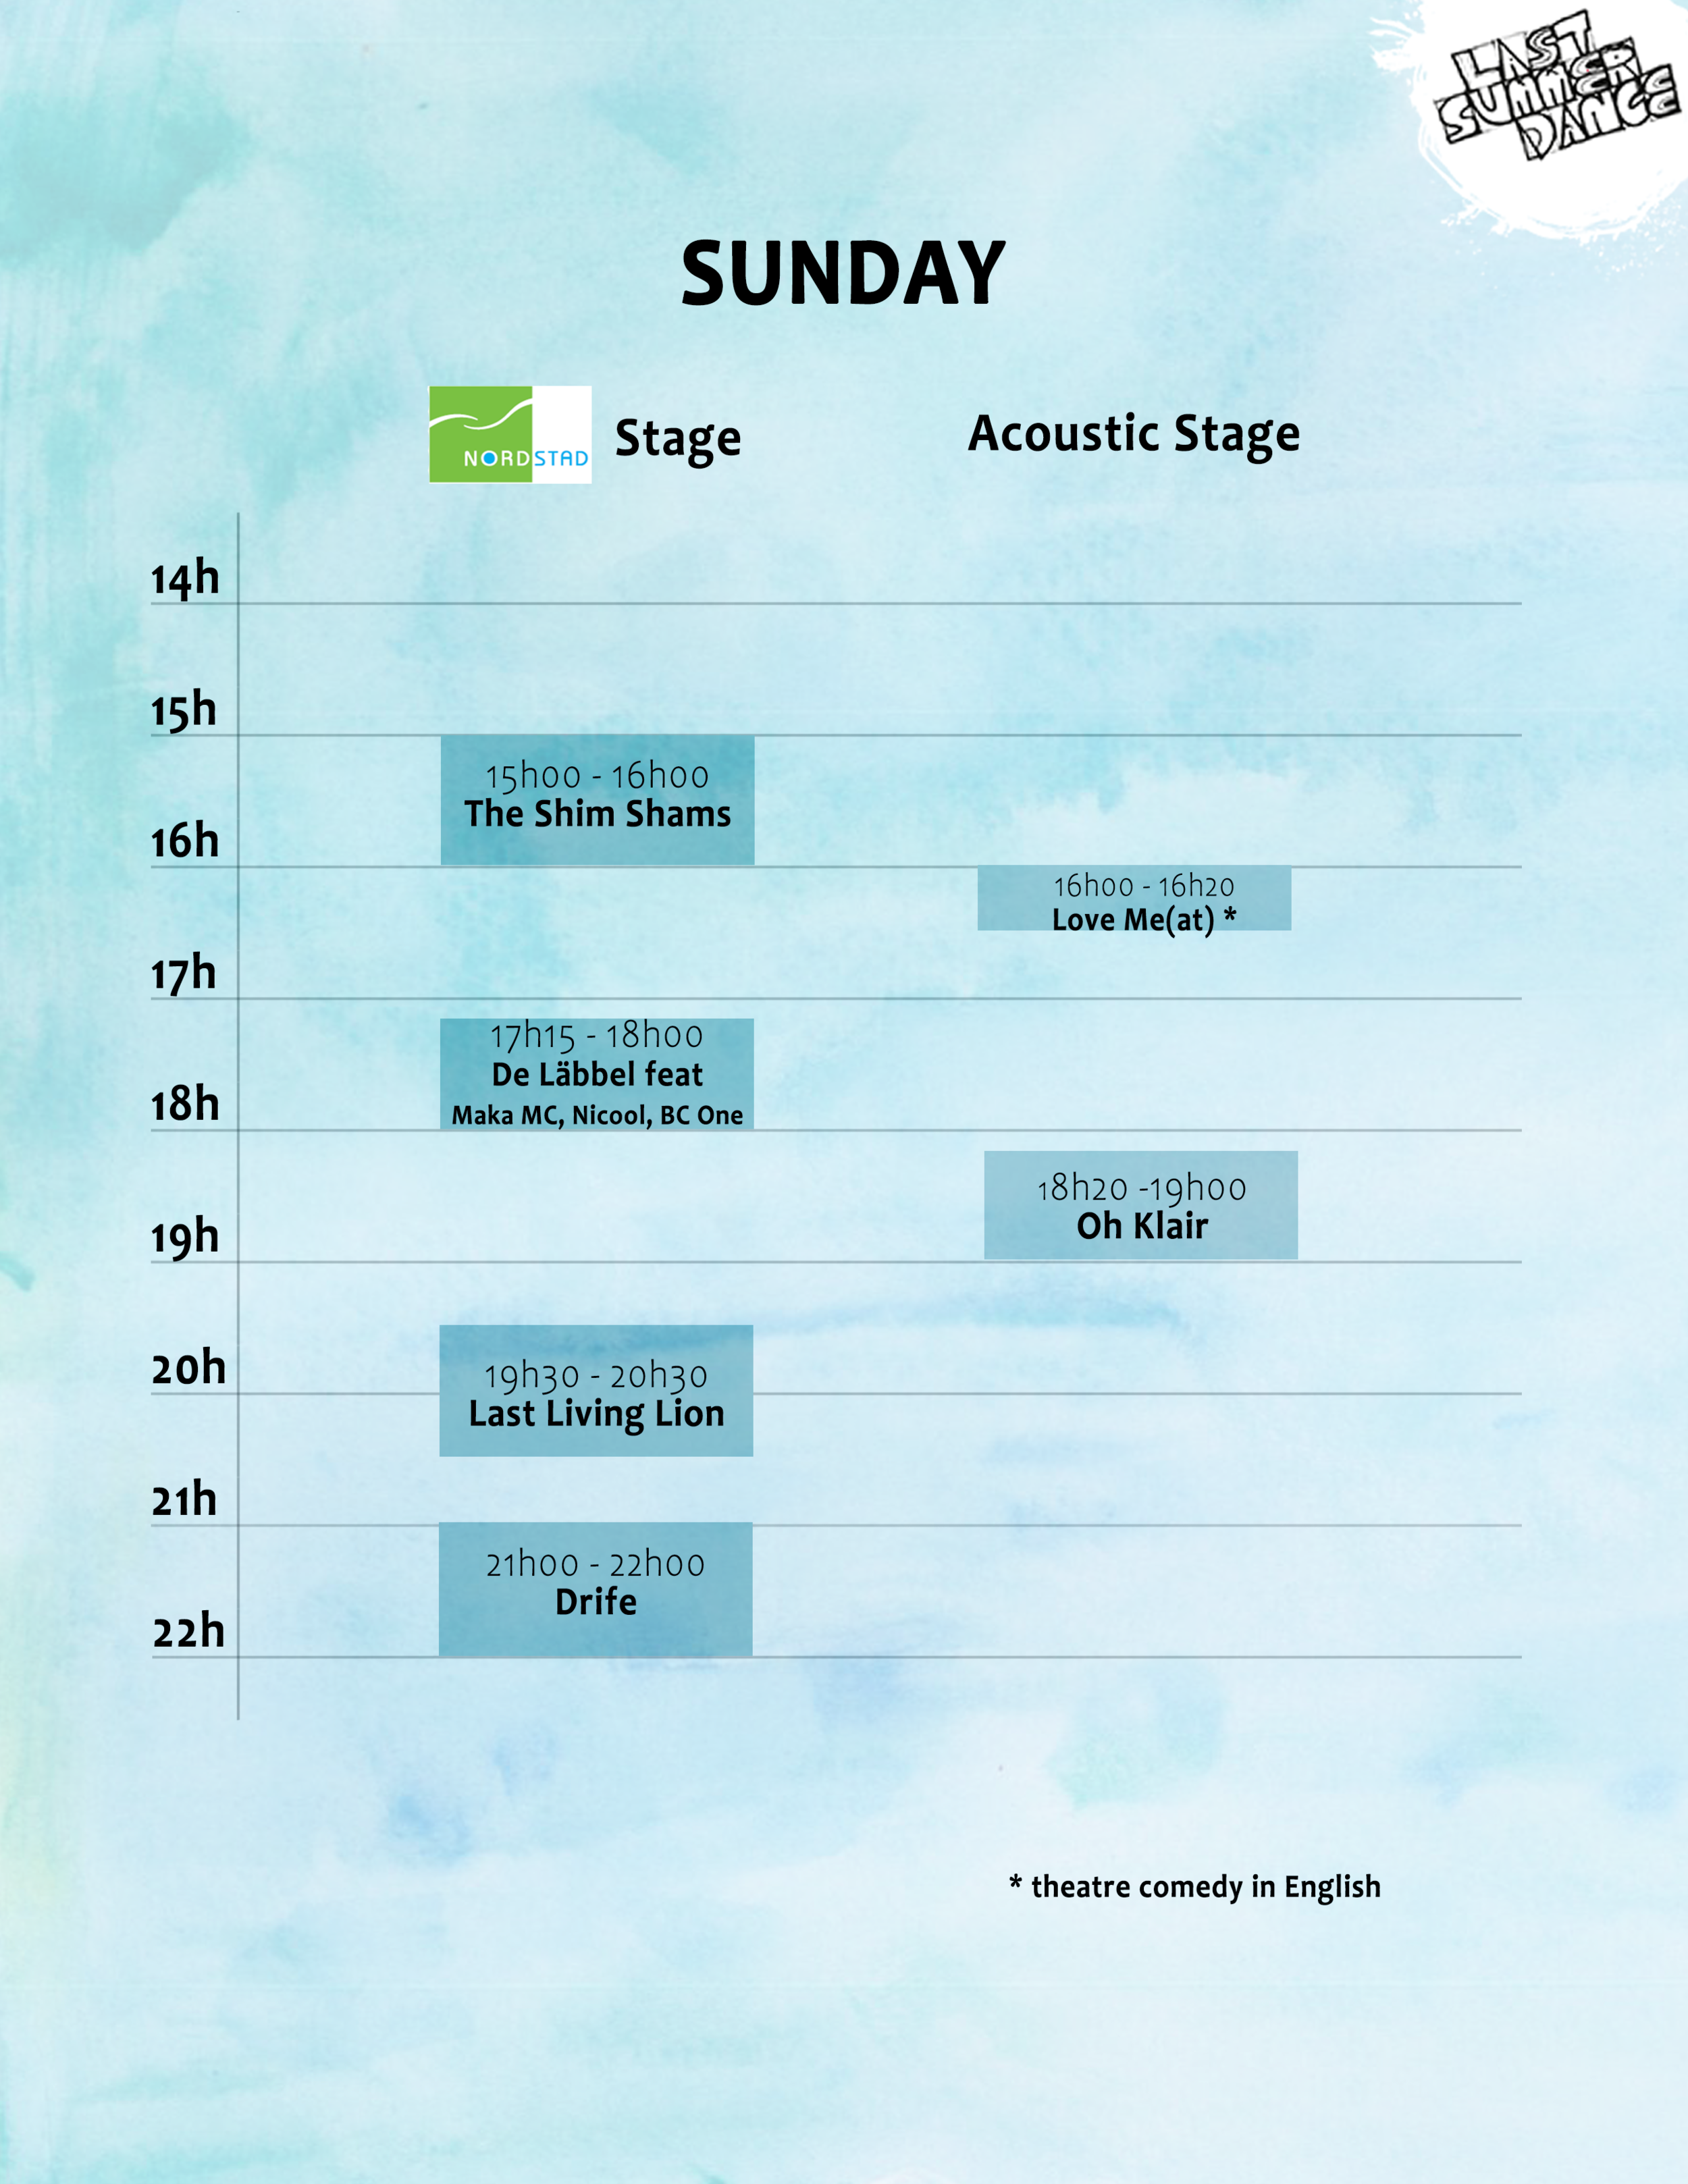 timetables2019-music-sunday.png